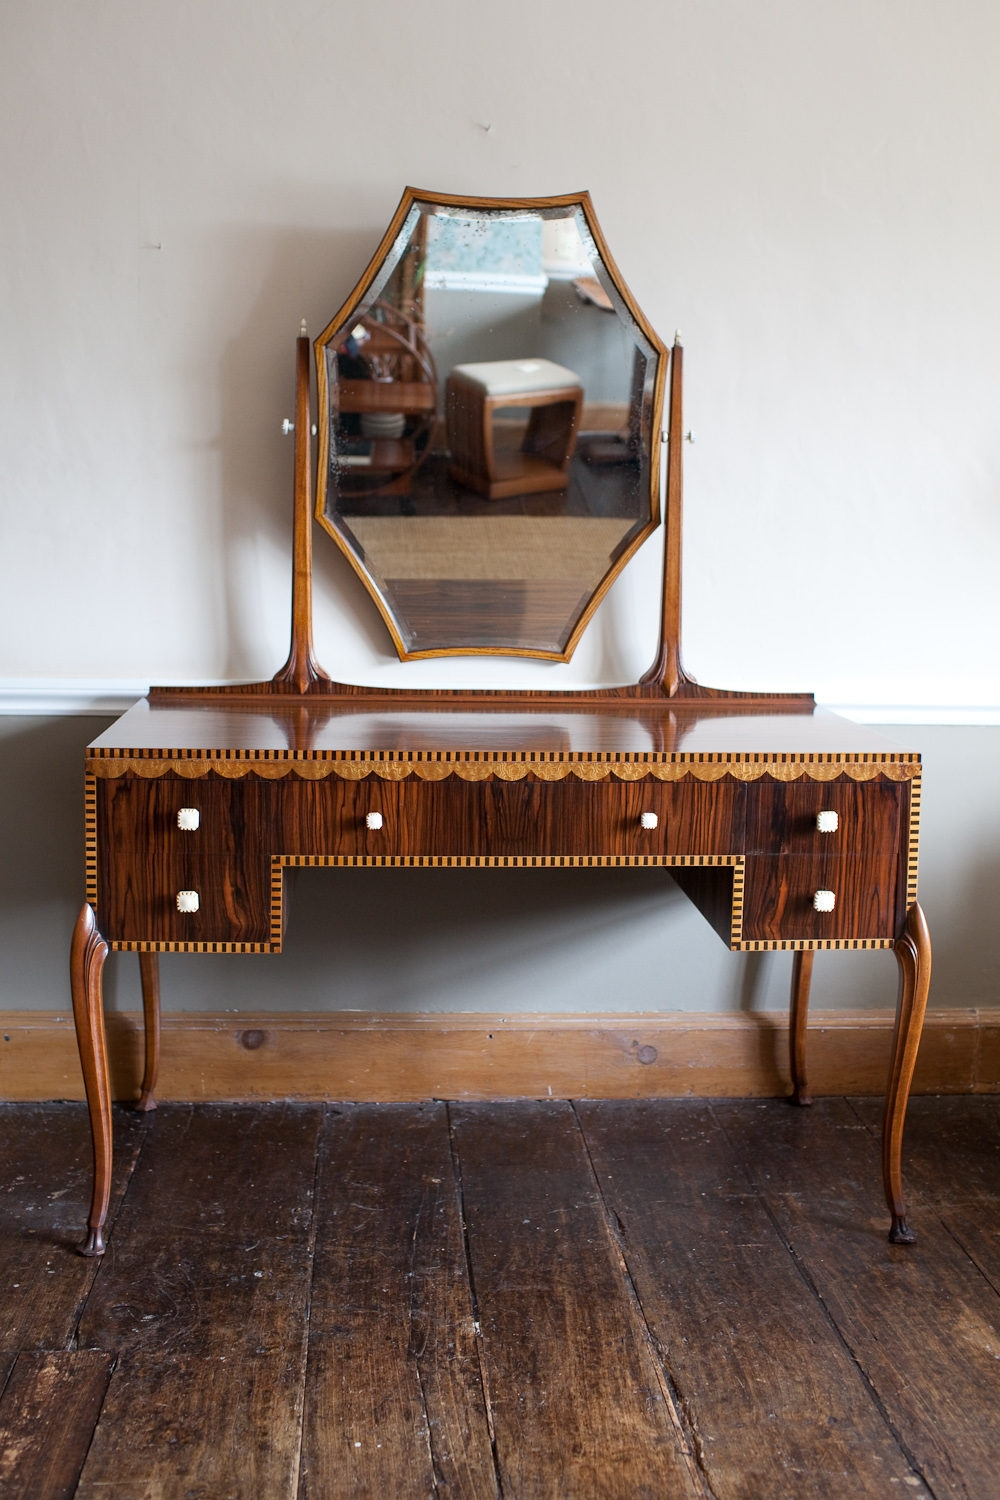 Art Deco Vanity Dressing Table Globorank Intended For Art Deco Mirrored Dressing Table (Image 5 of 15)